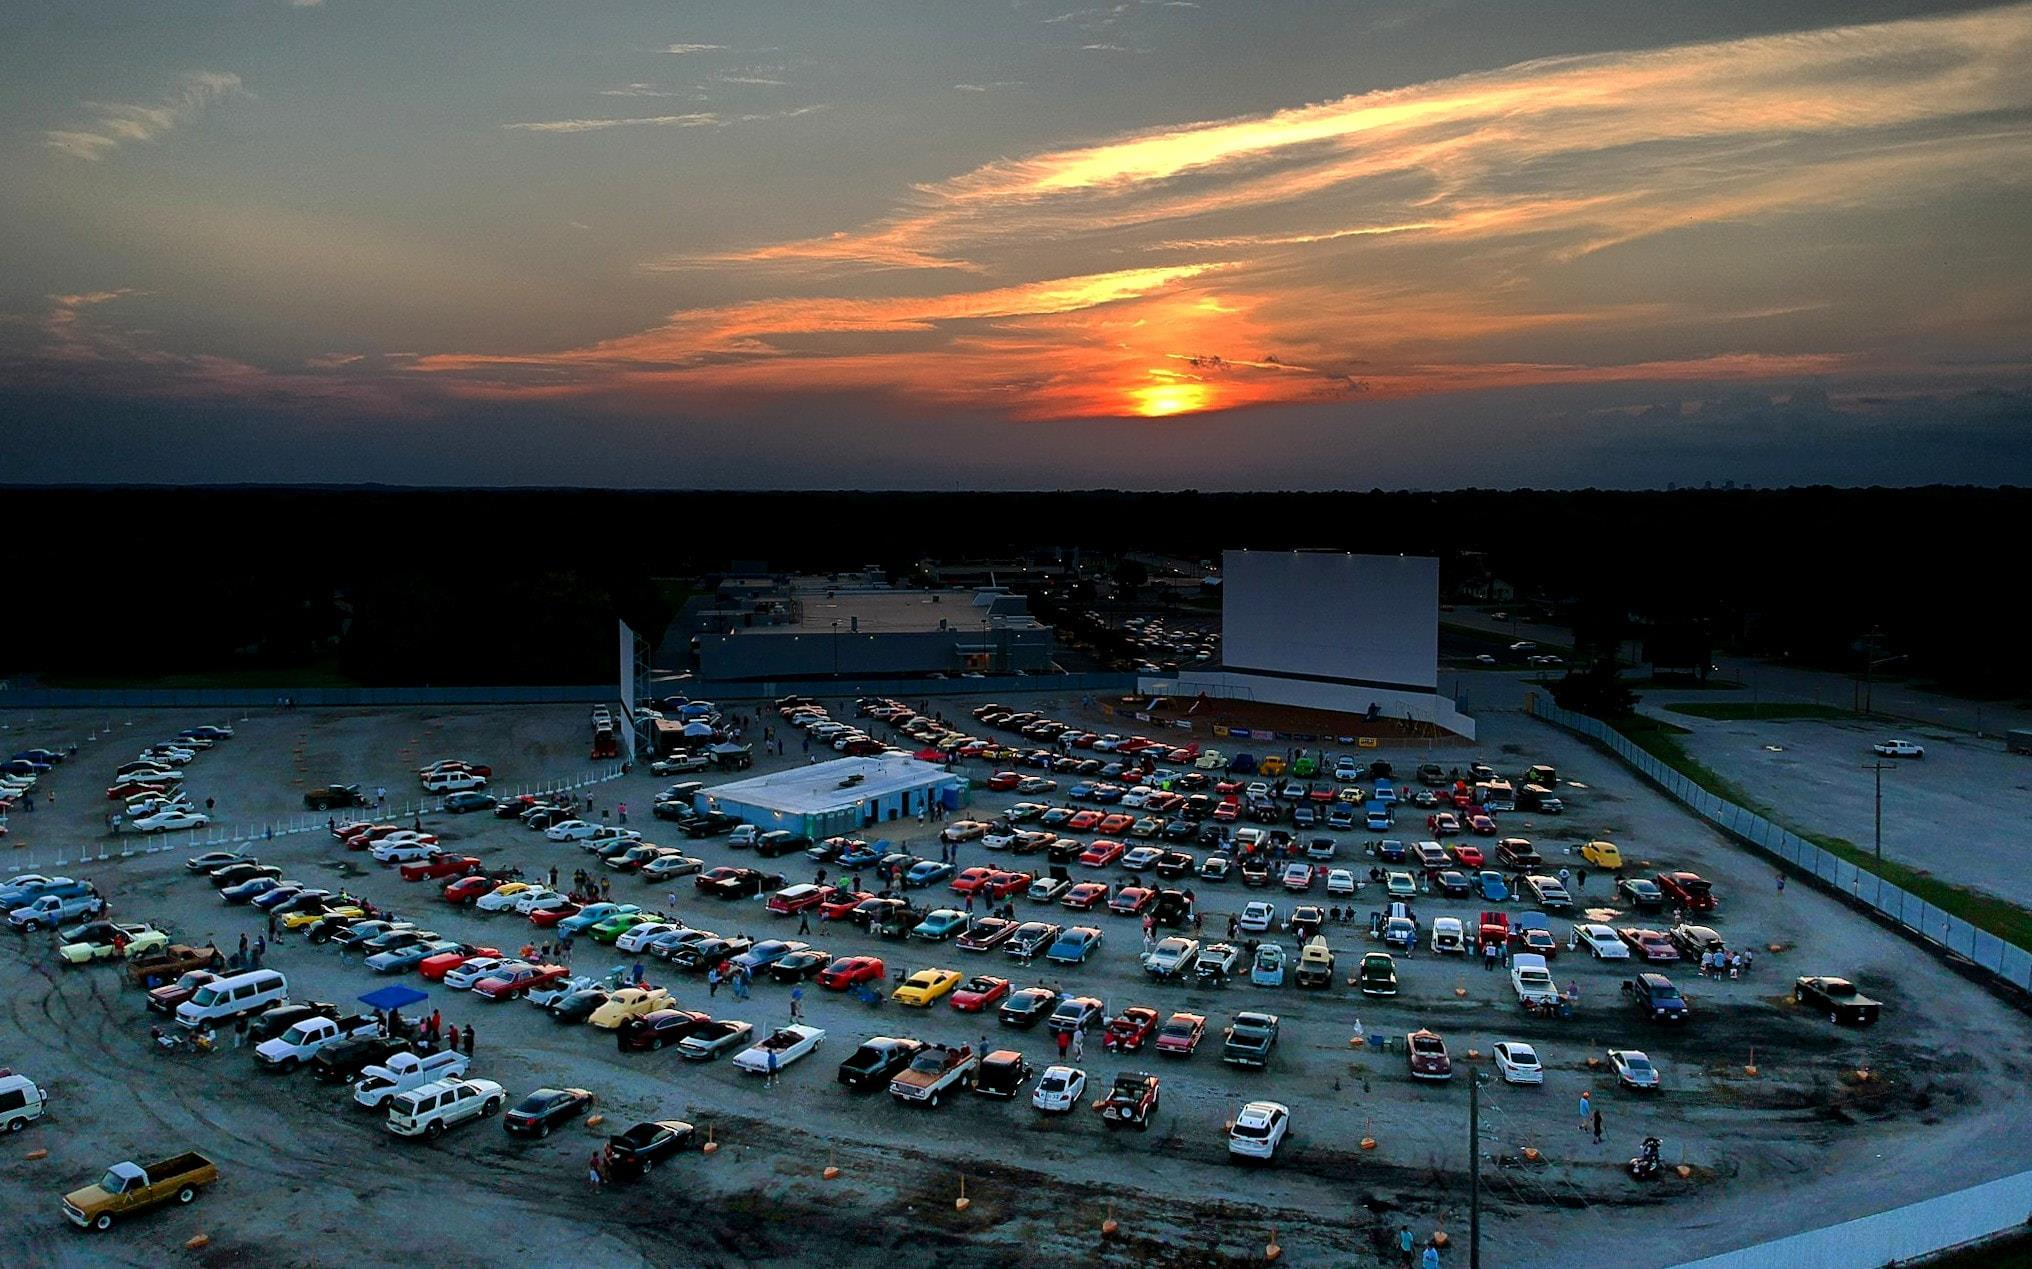 Summer 2018 Drive in Movie at SkyView in Belleville IL v8tv movie night - 19189781